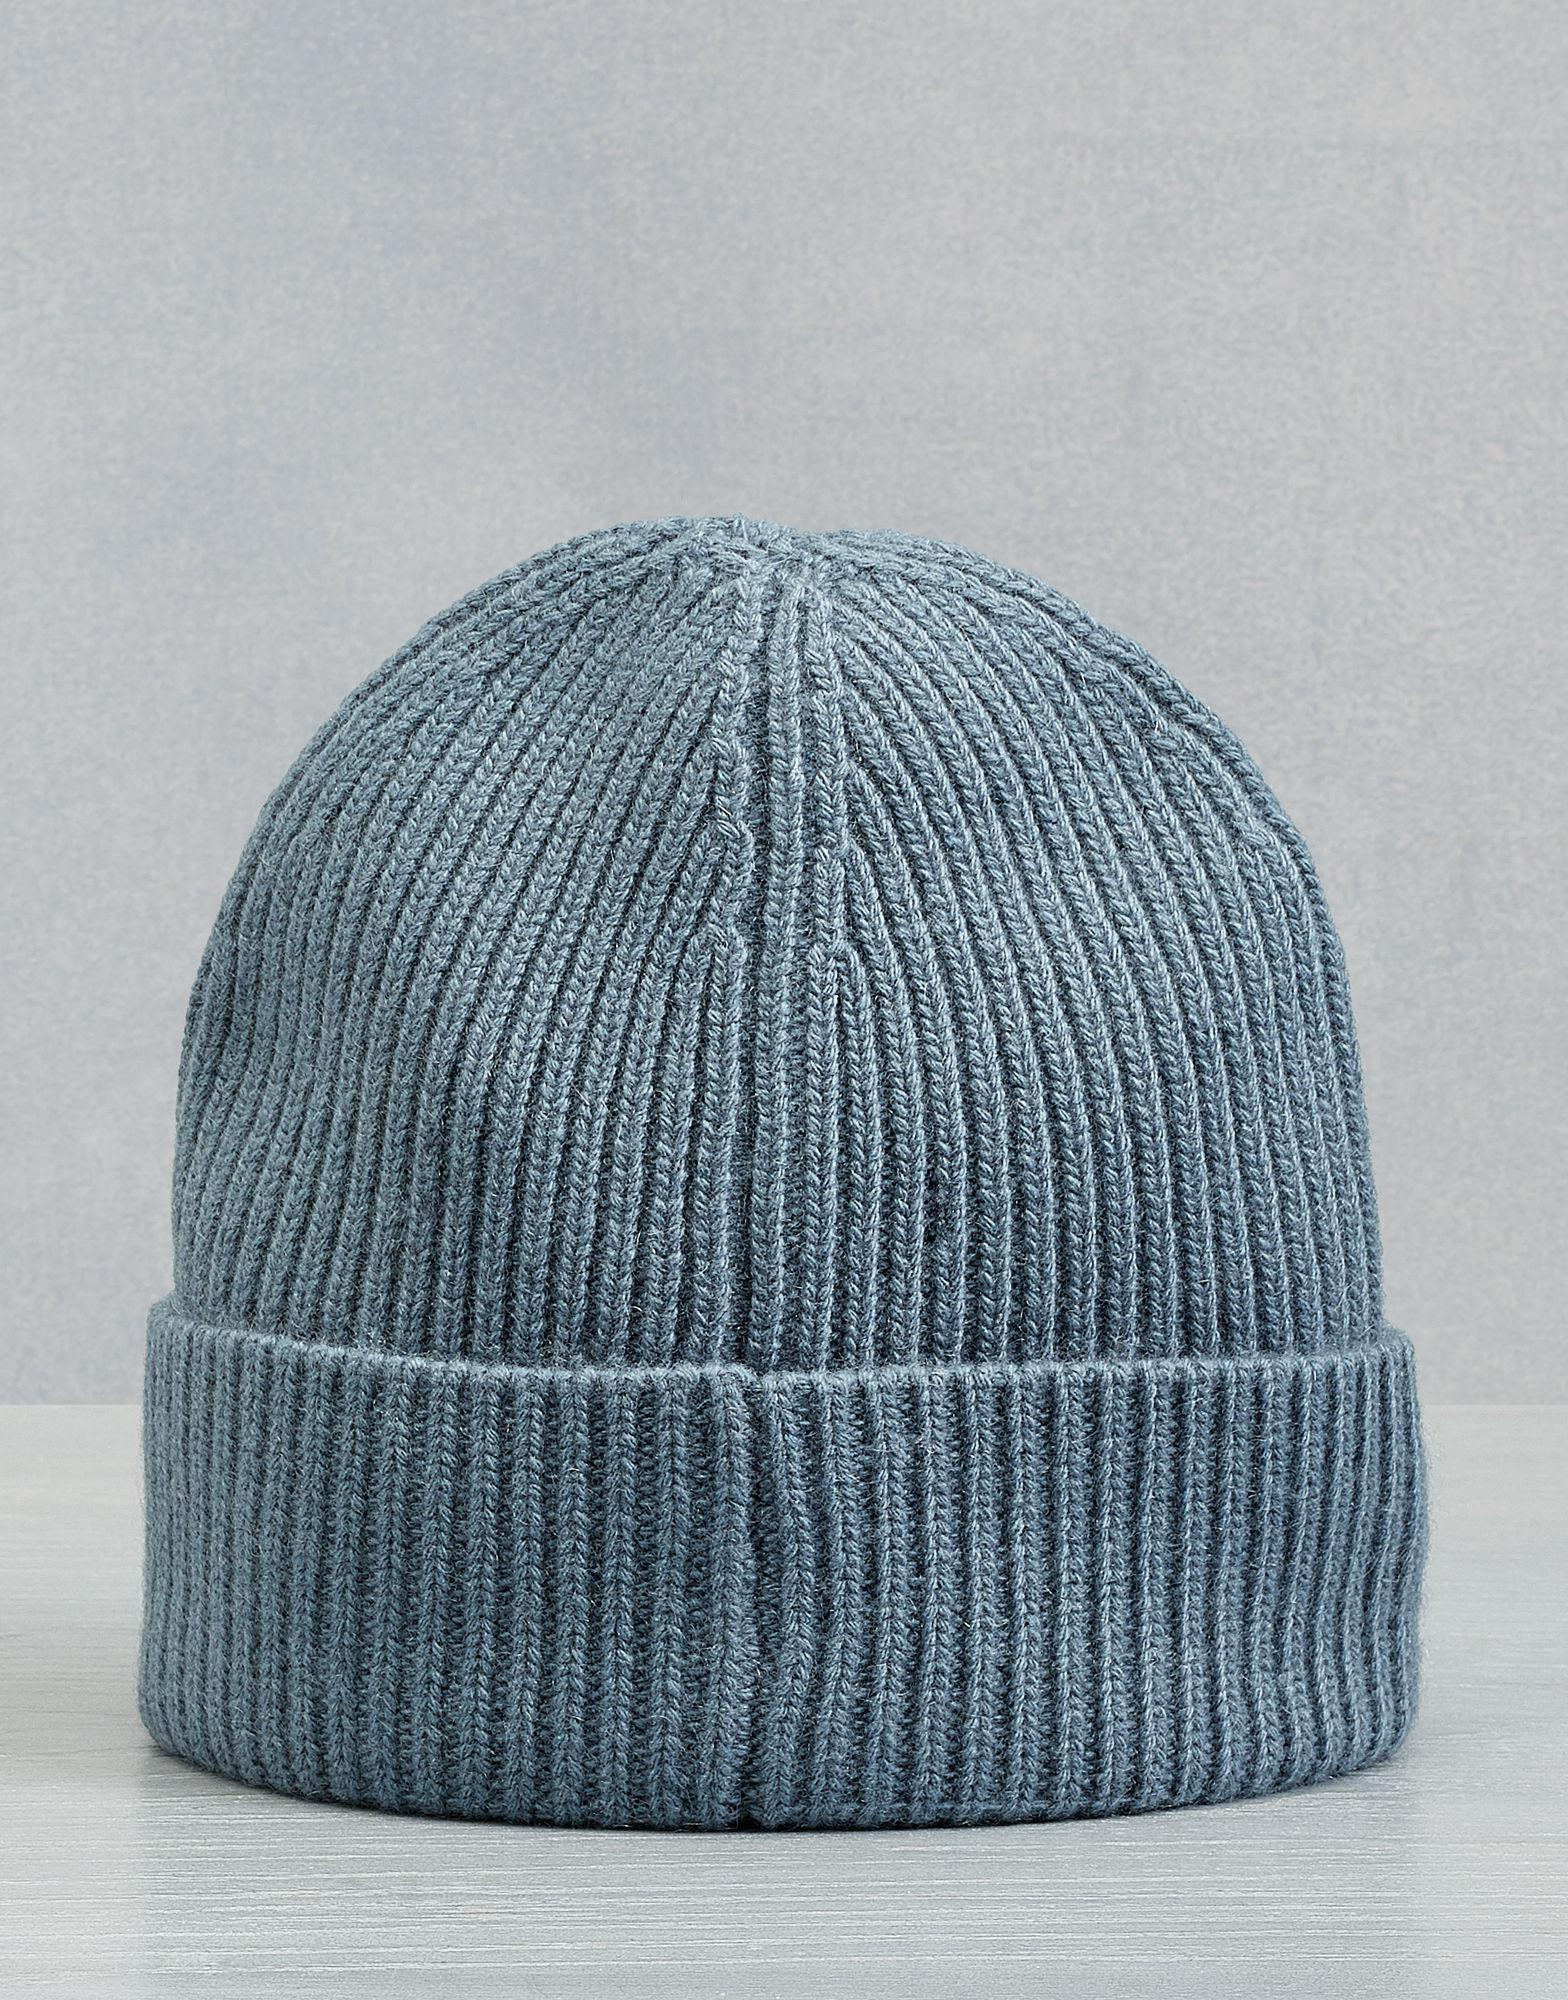 Lyst - Belstaff Seabrook Knitted Hat in Blue for Men 1a15632f0e52